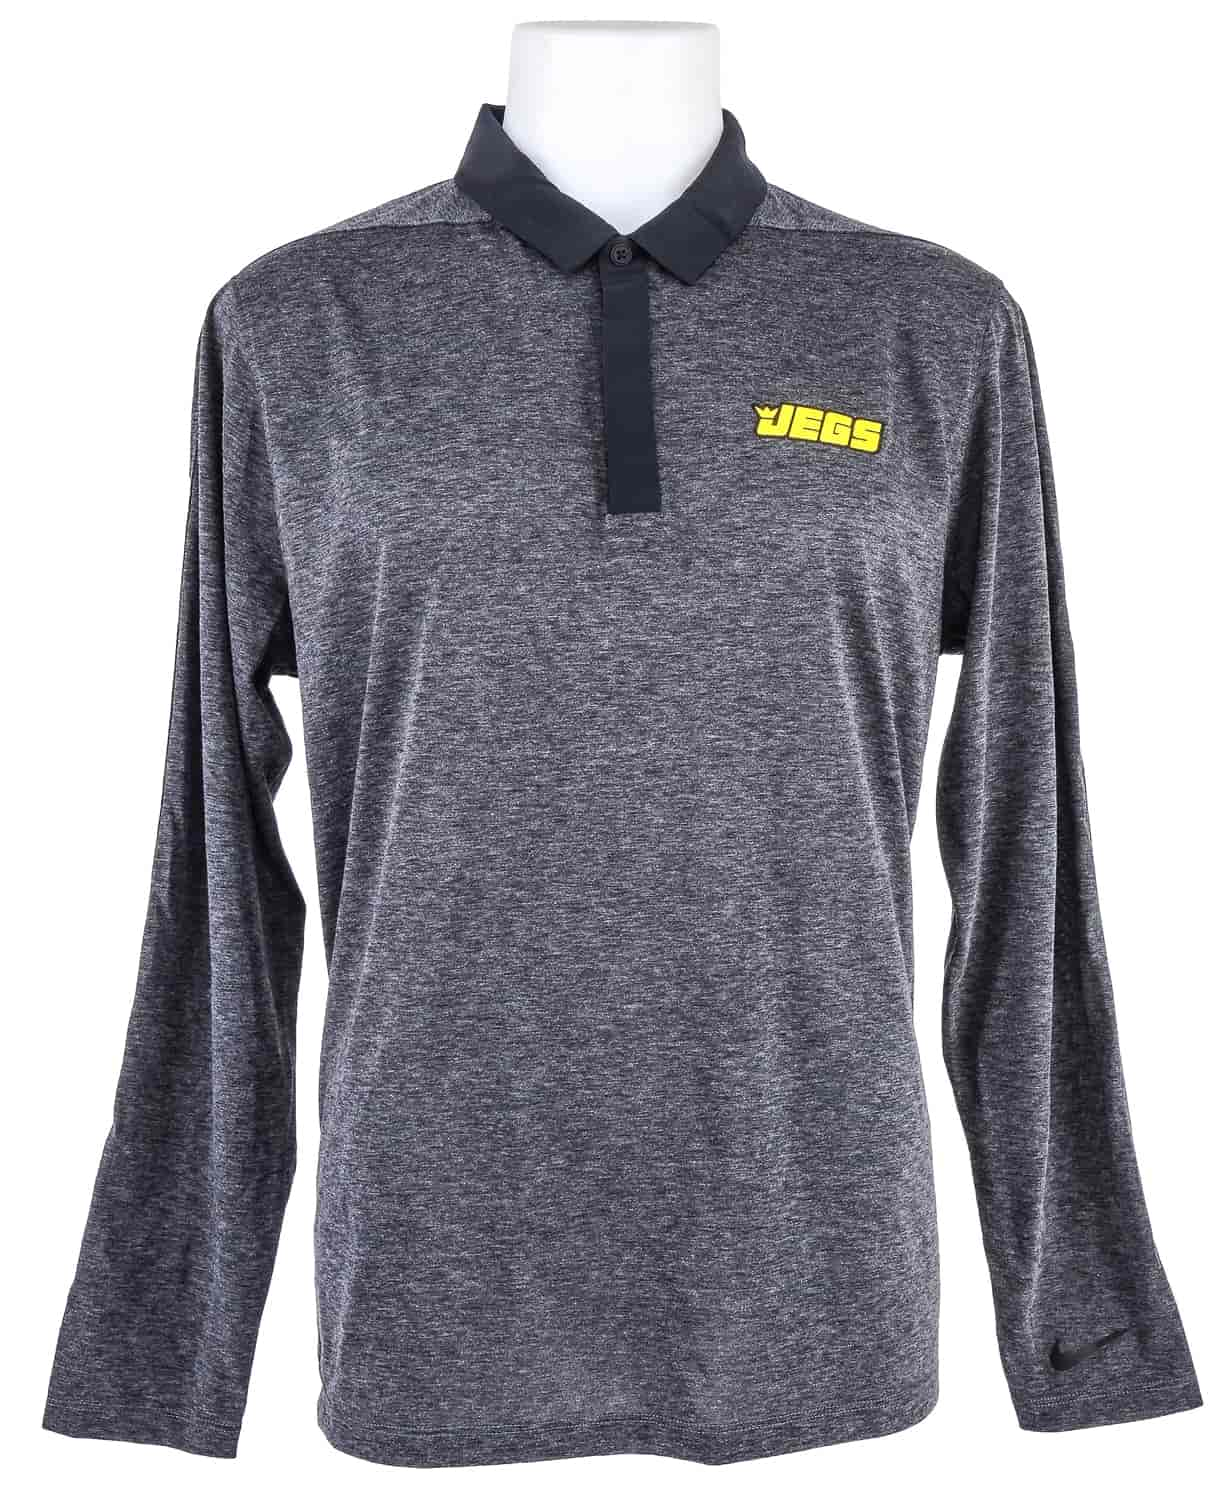 a6b57a3e JEGS Men's Nike Dri-Fit Long Sleeve Polo | JEGS Apparel and Collectibles